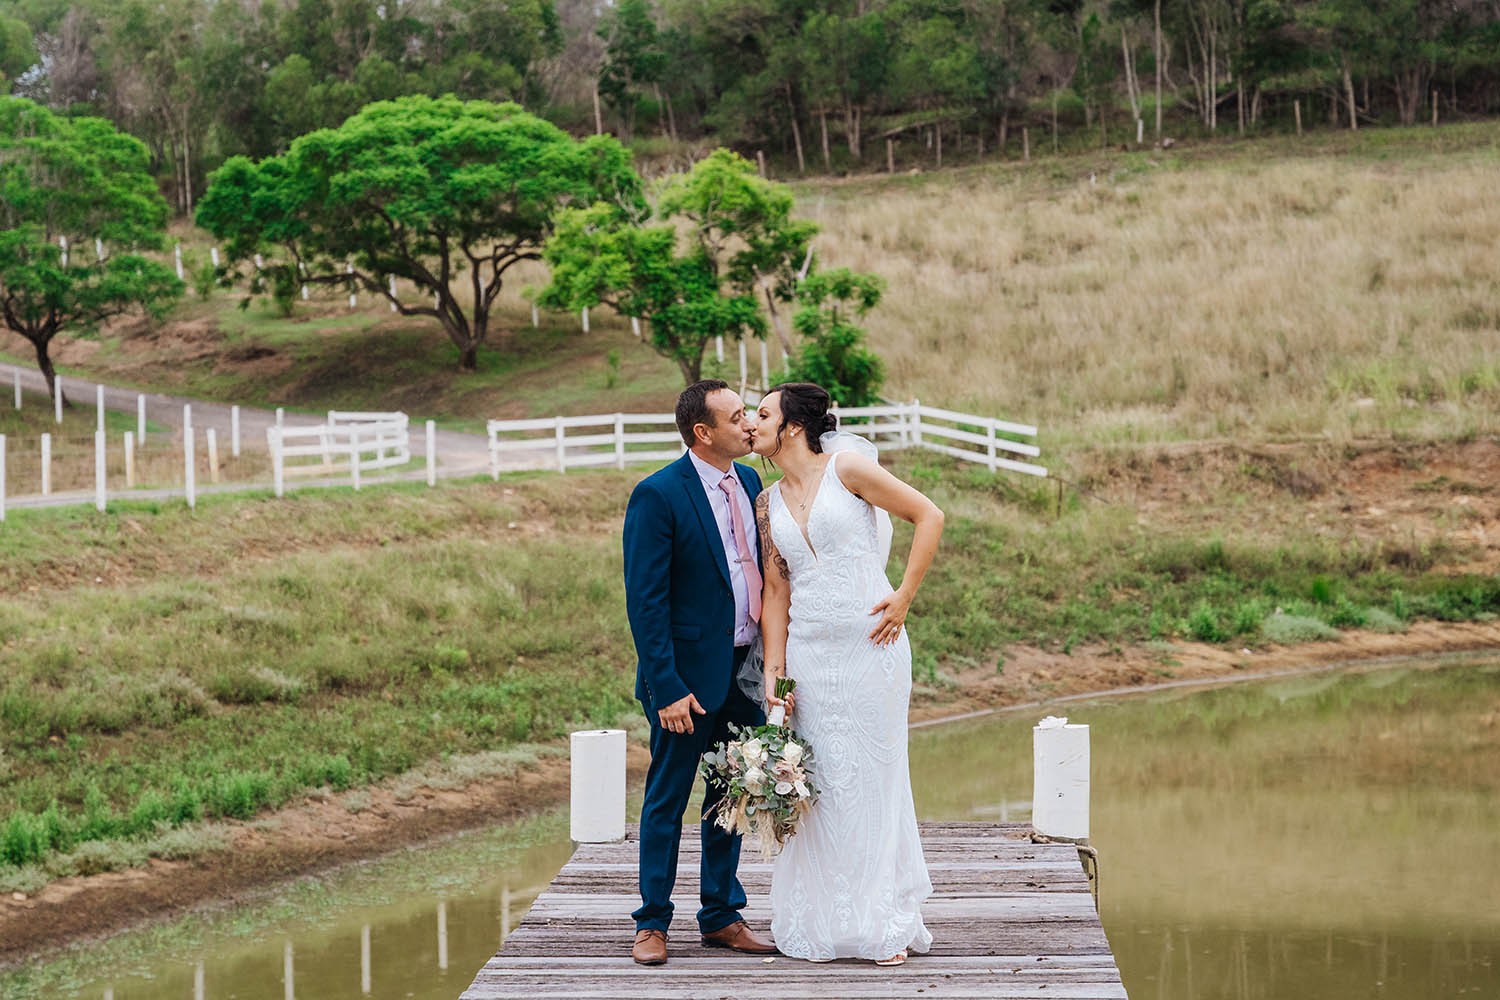 Wedding Photography - Couple in front of dam